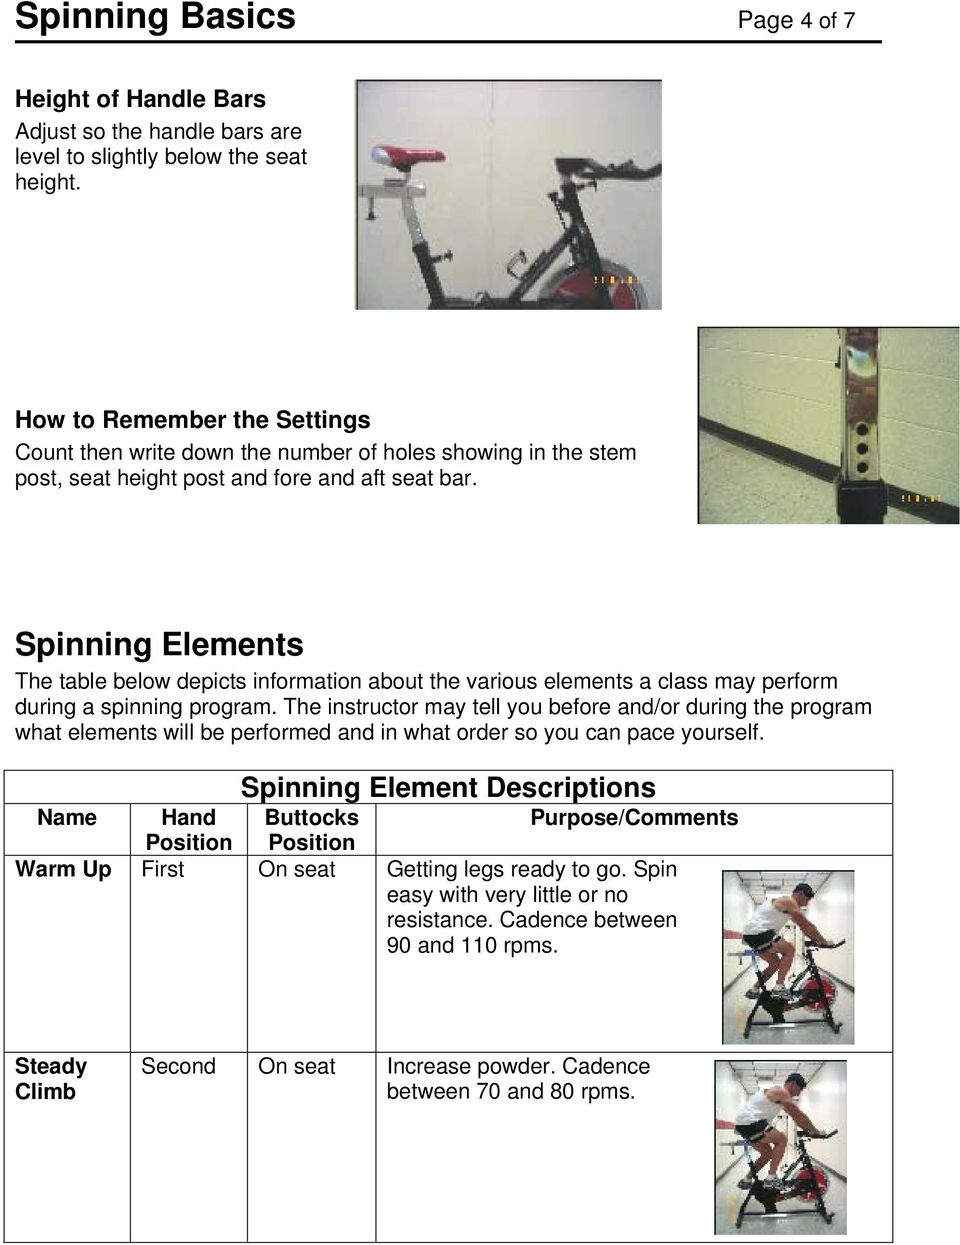 Spinning Elements The table below depicts information about the various elements a class may perform during a spinning program.